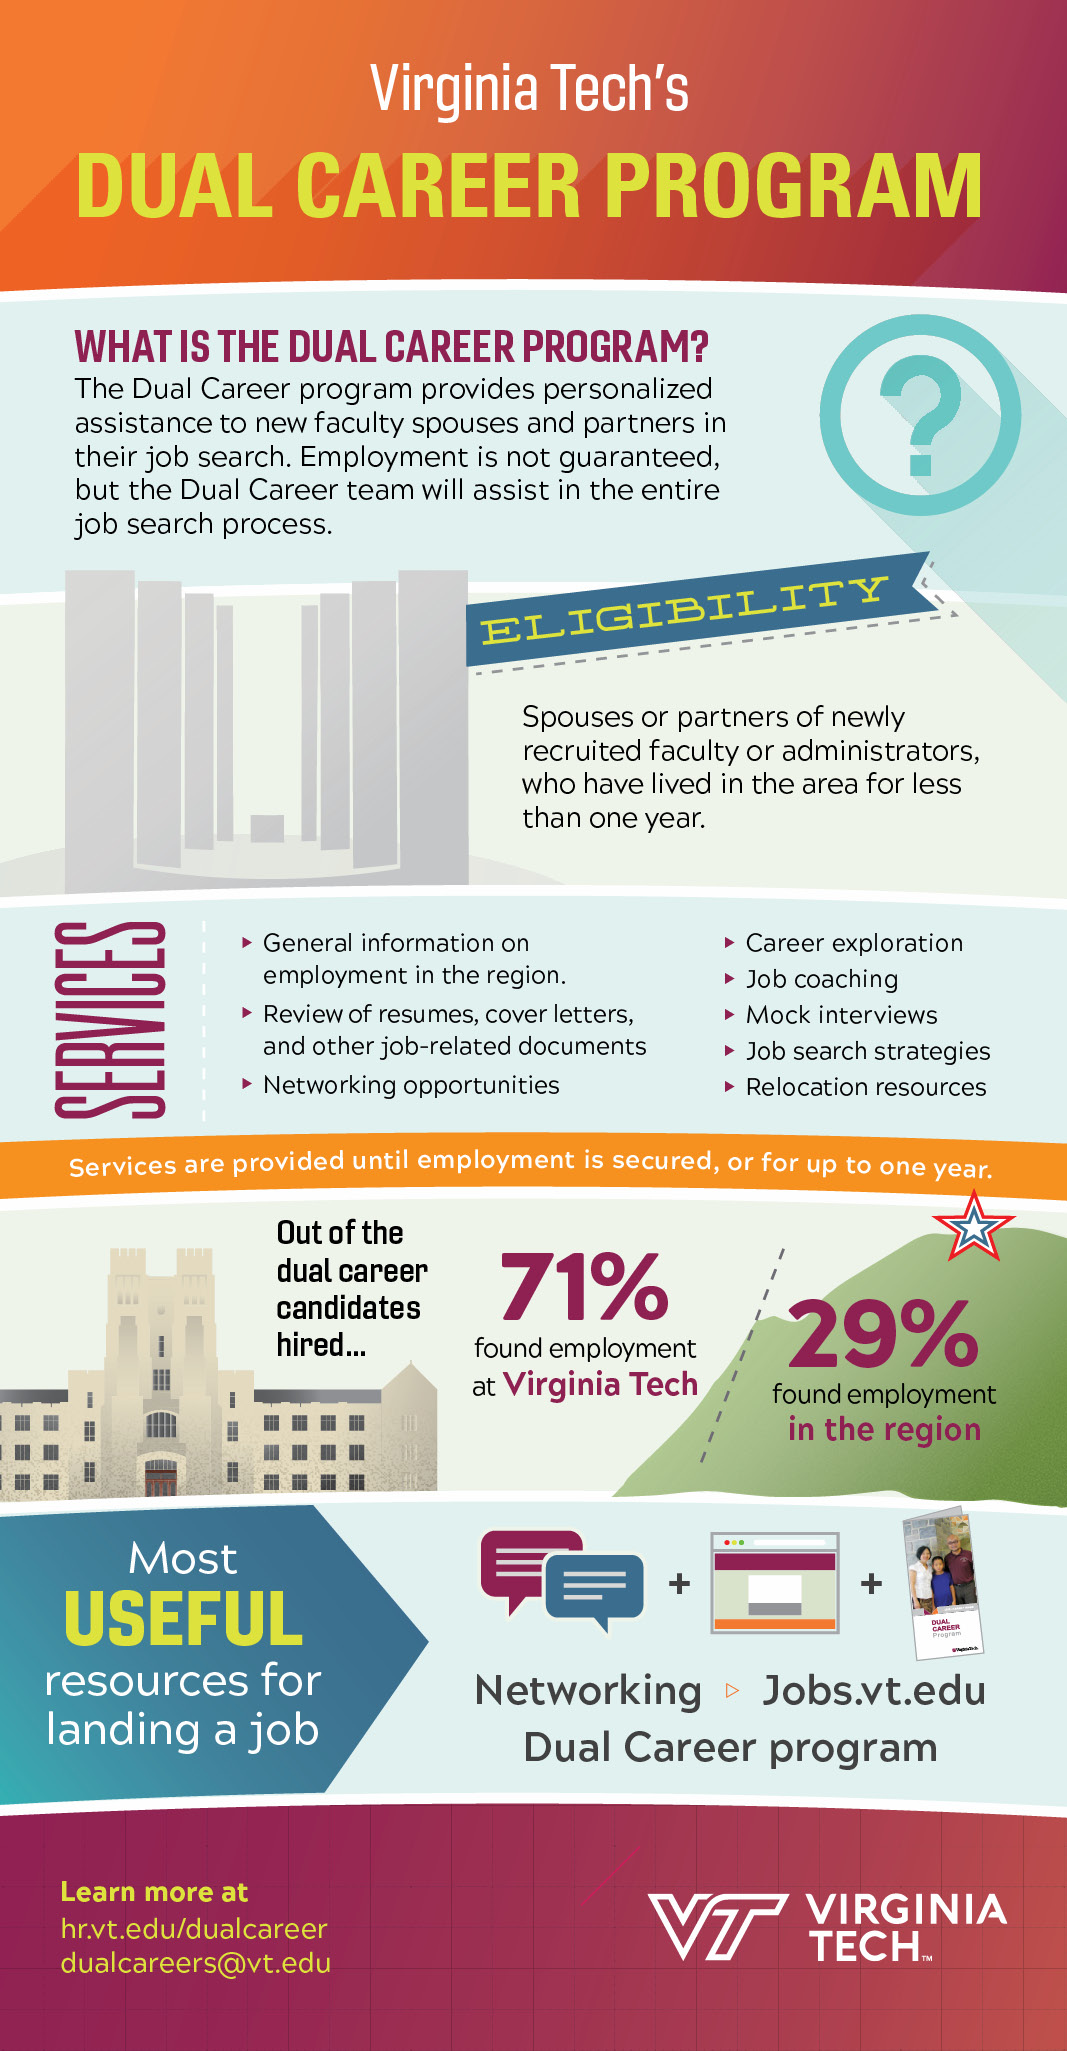 Dual Career Program infographic